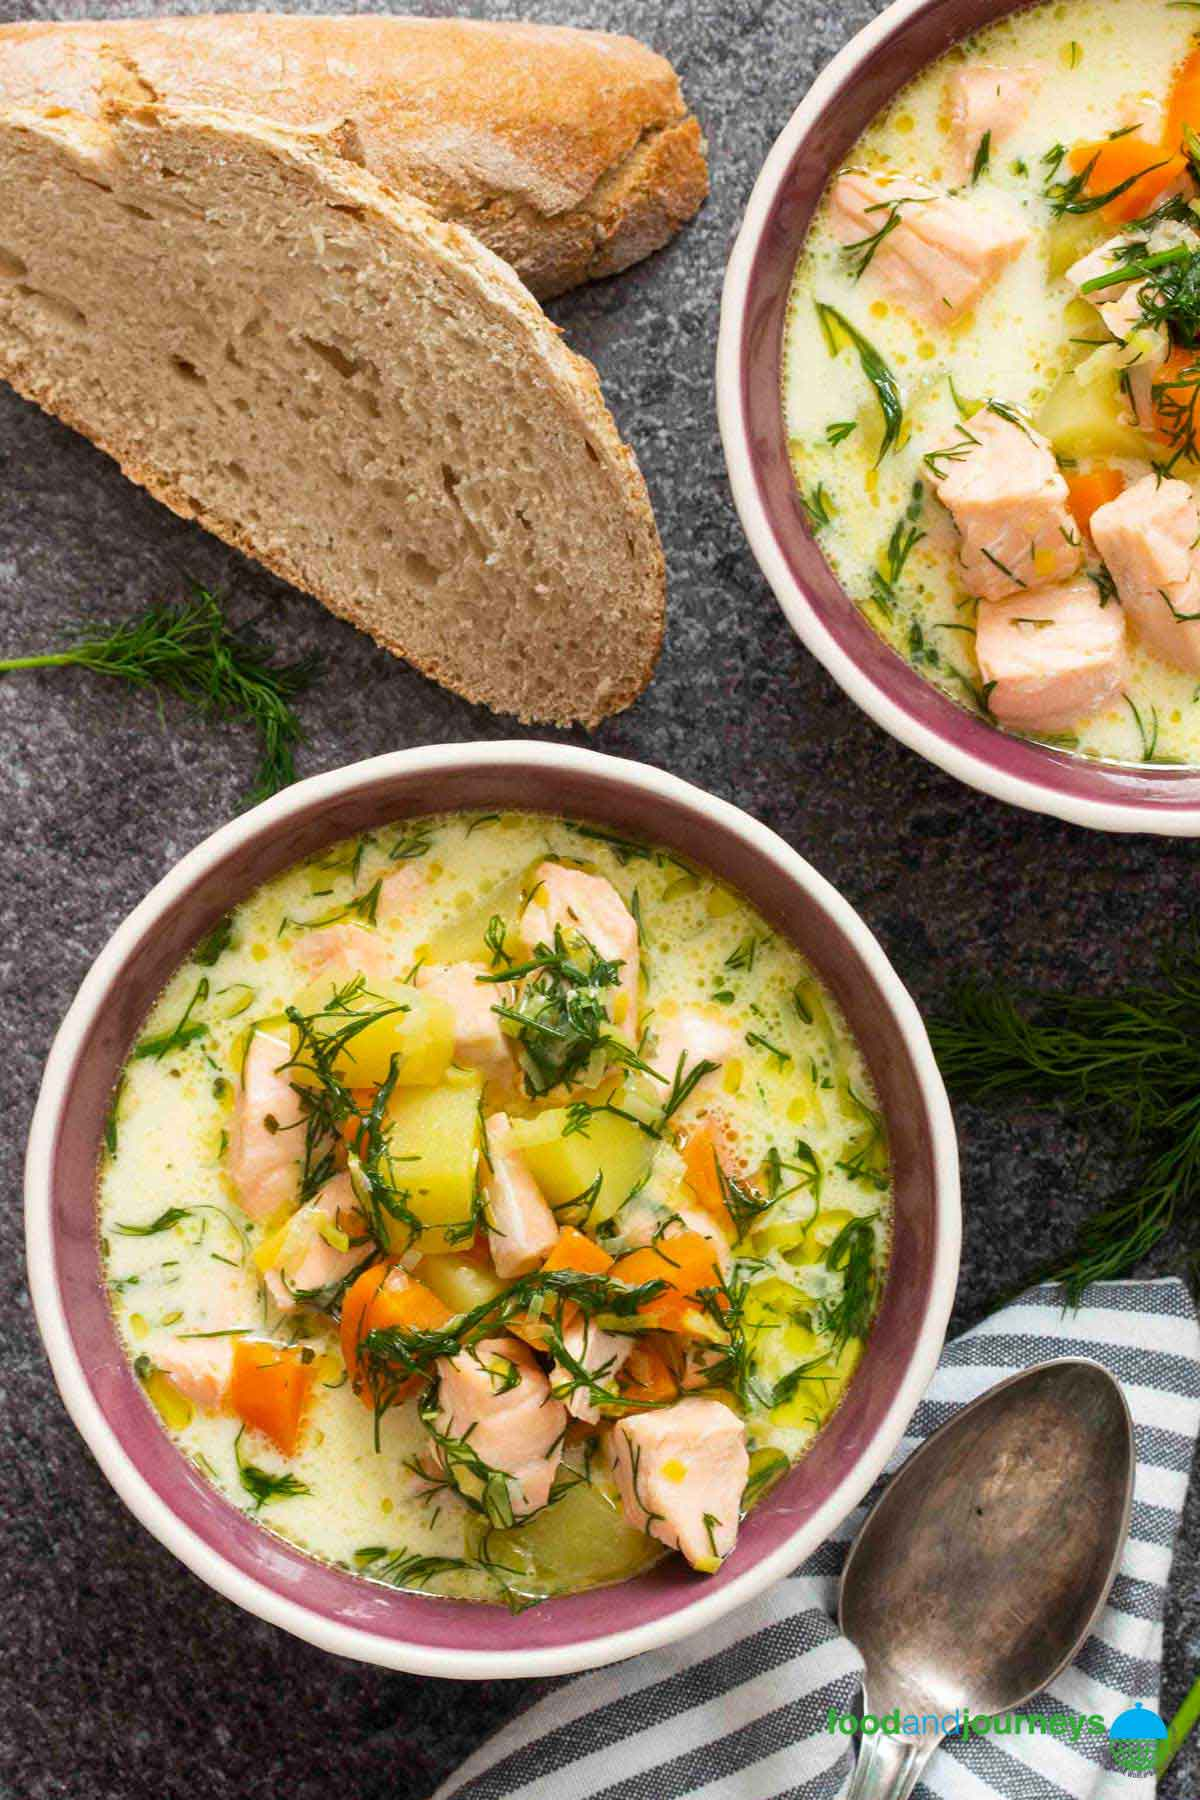 An overhead shot of two bowls of Finnish Salmon soup, served with some bread, as part of Classic Finnish Recipes.